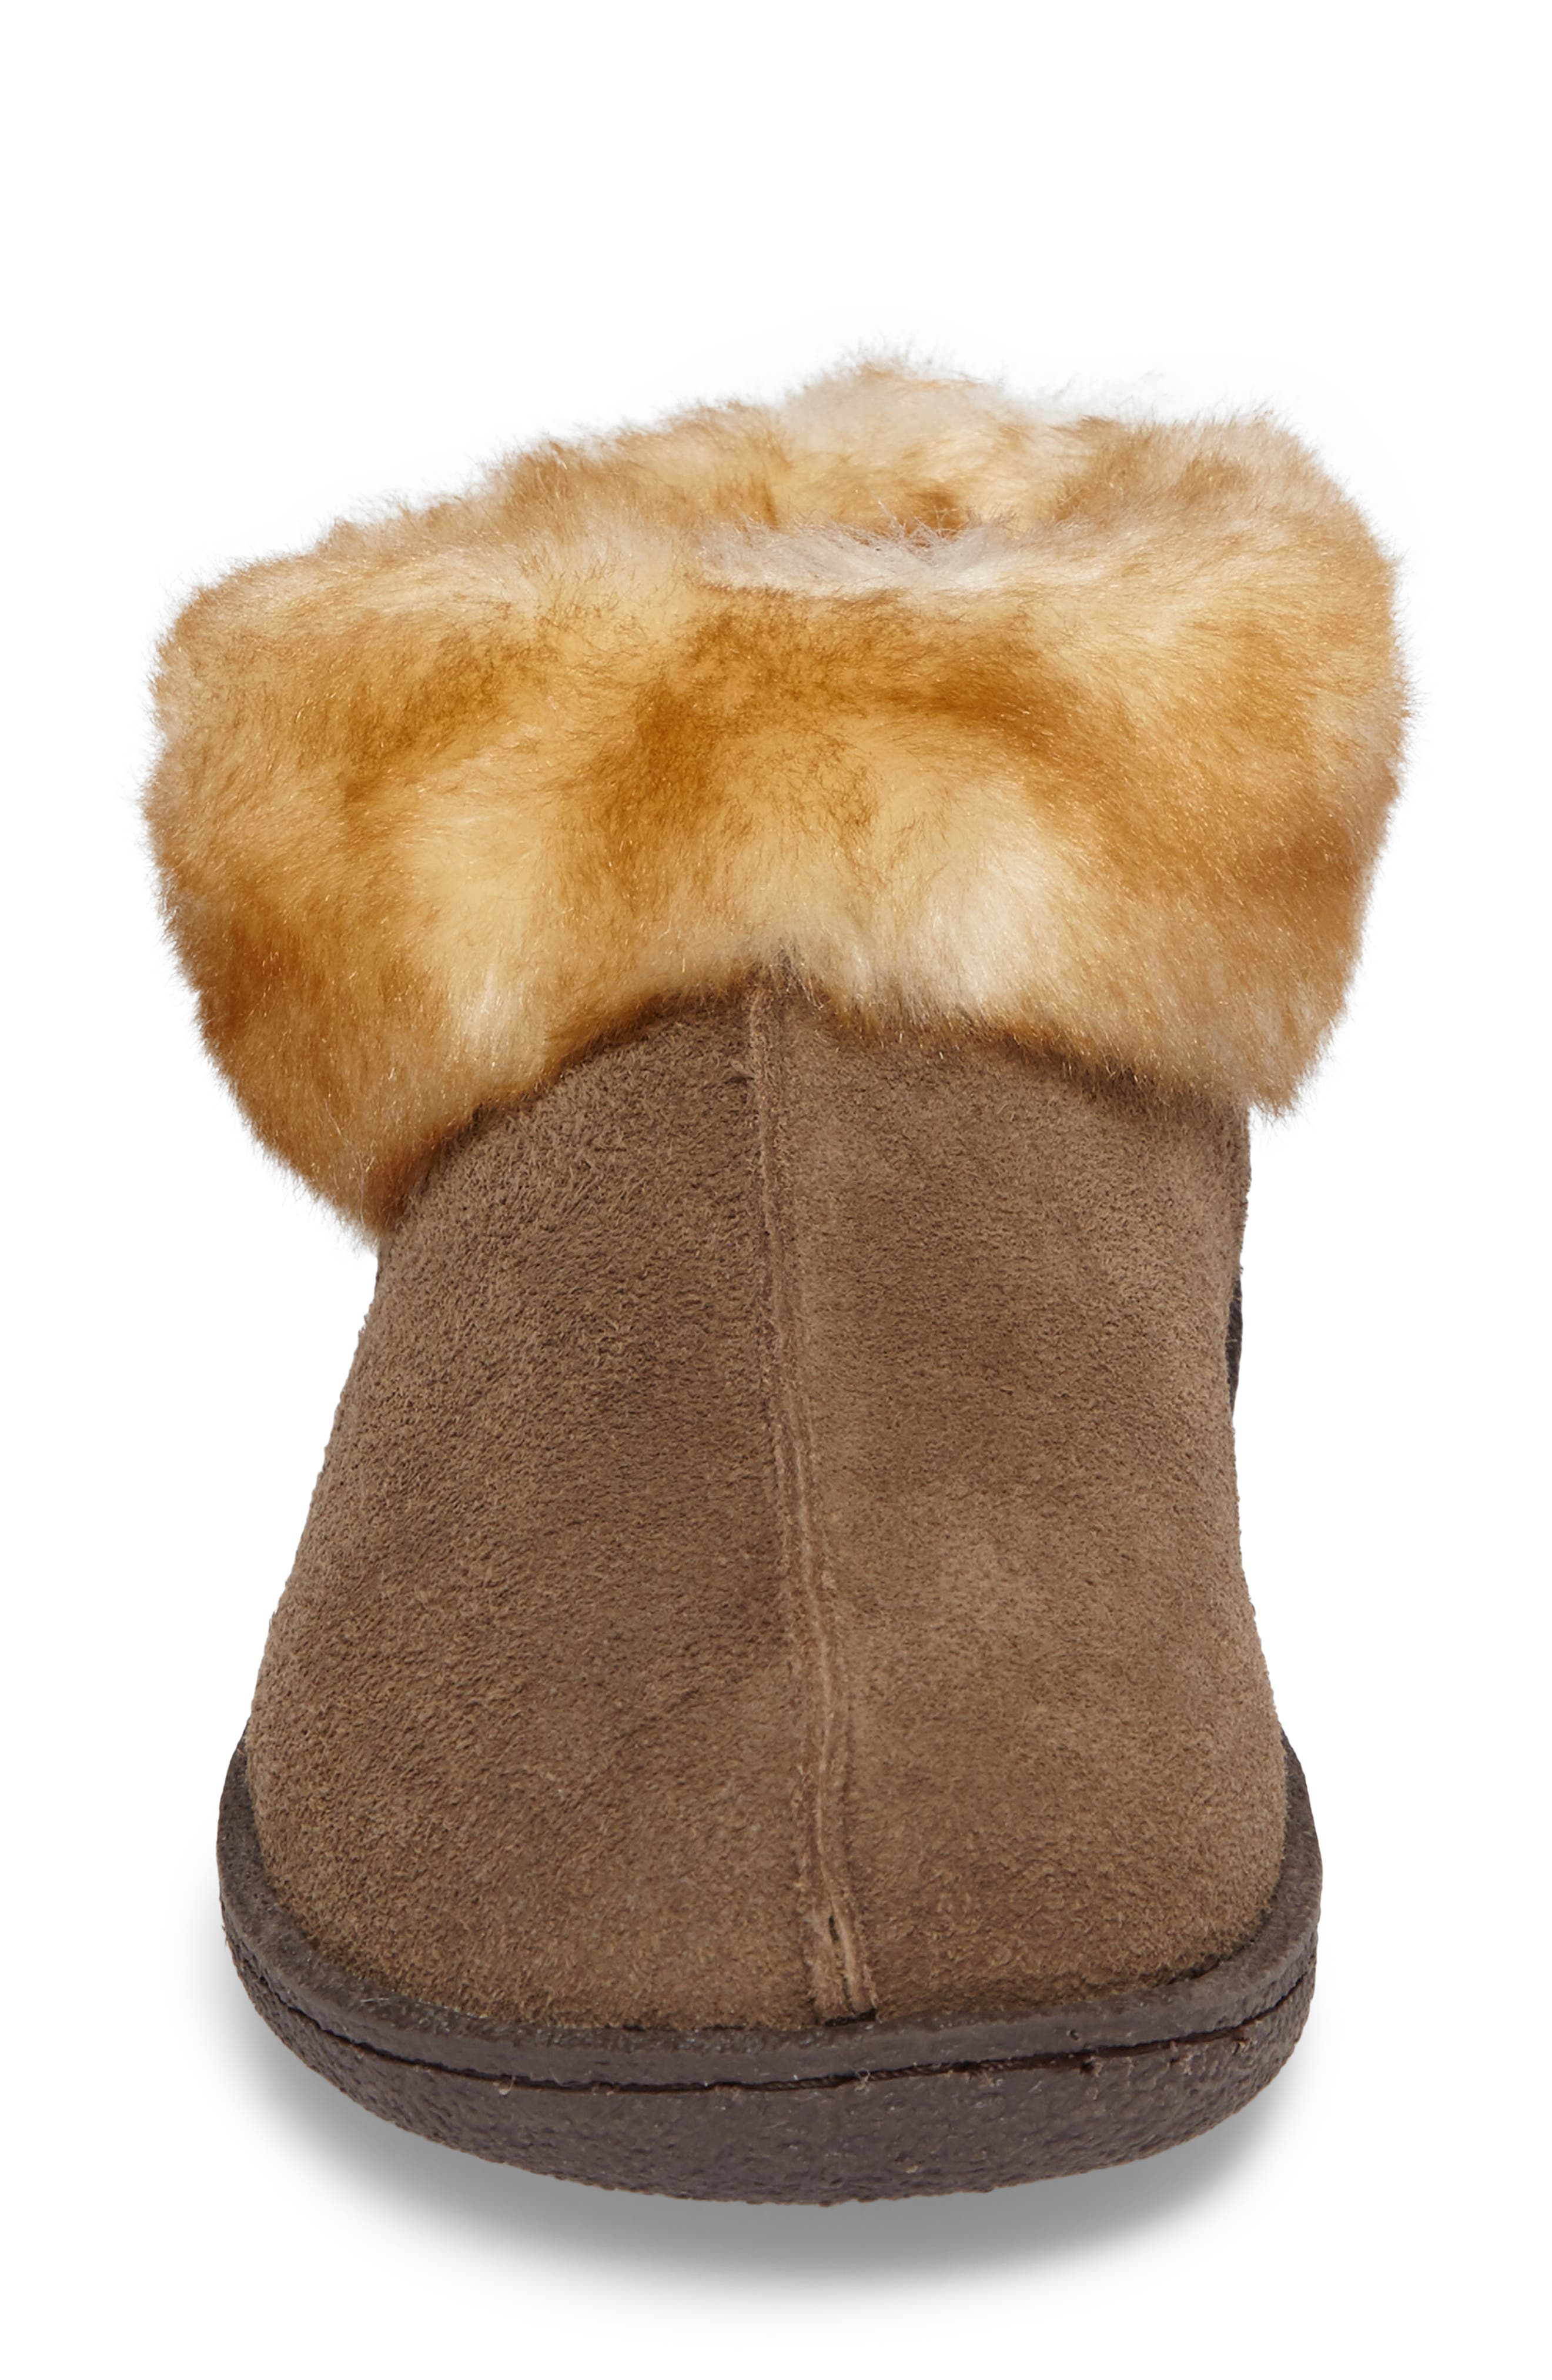 Autumn Ridge II Faux Fur Slipper Bootie,                             Alternate thumbnail 8, color,